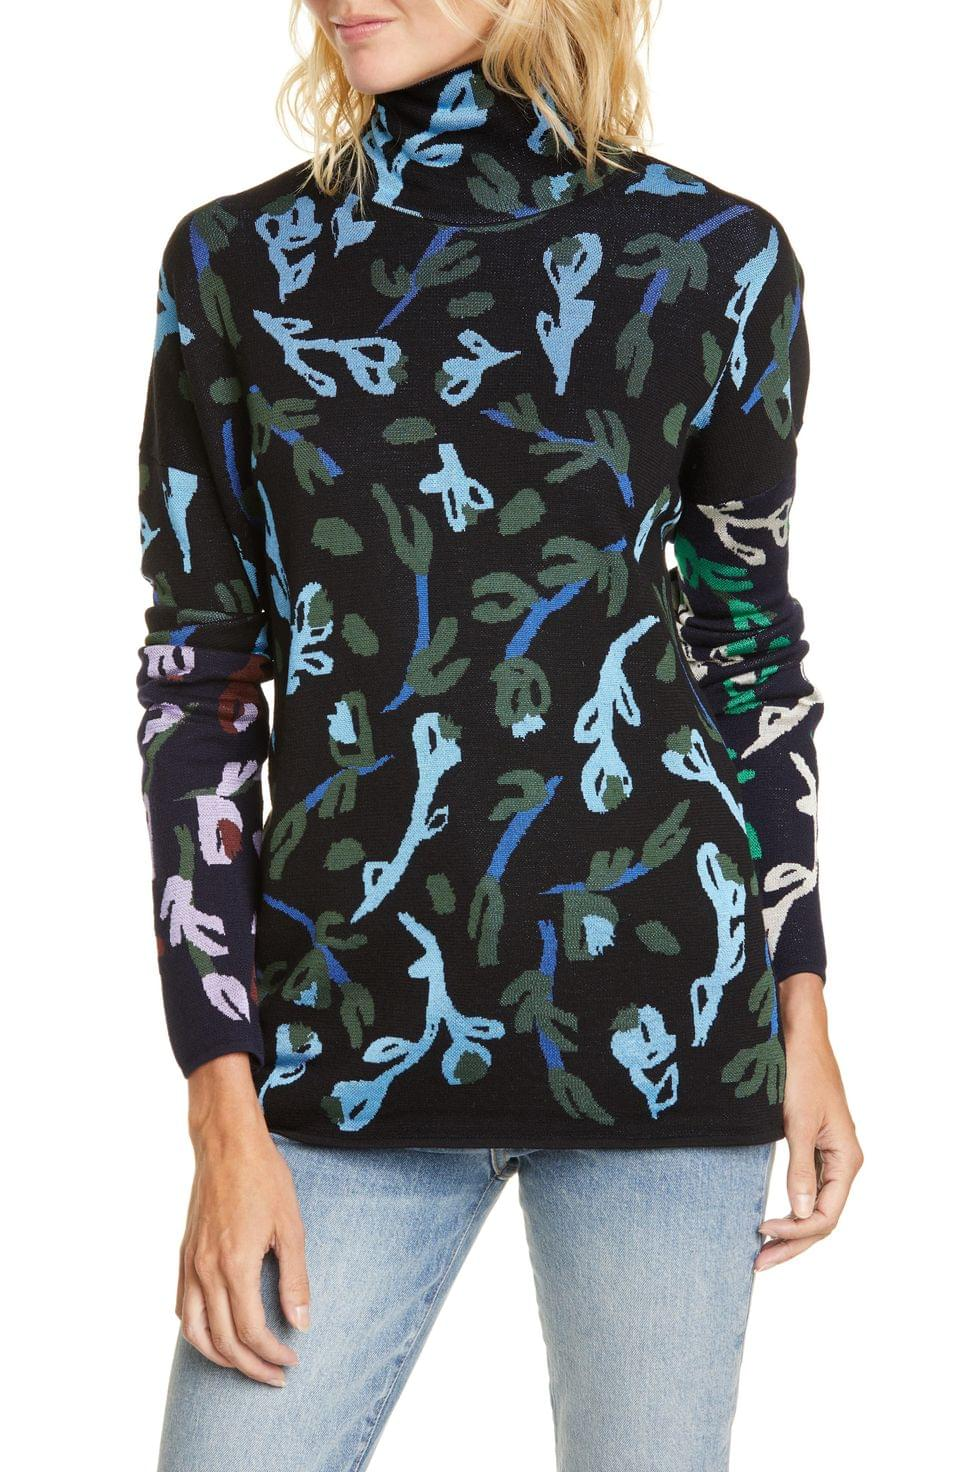 Women's Christian Wijnants Kajena Floral Jacquard Sweater